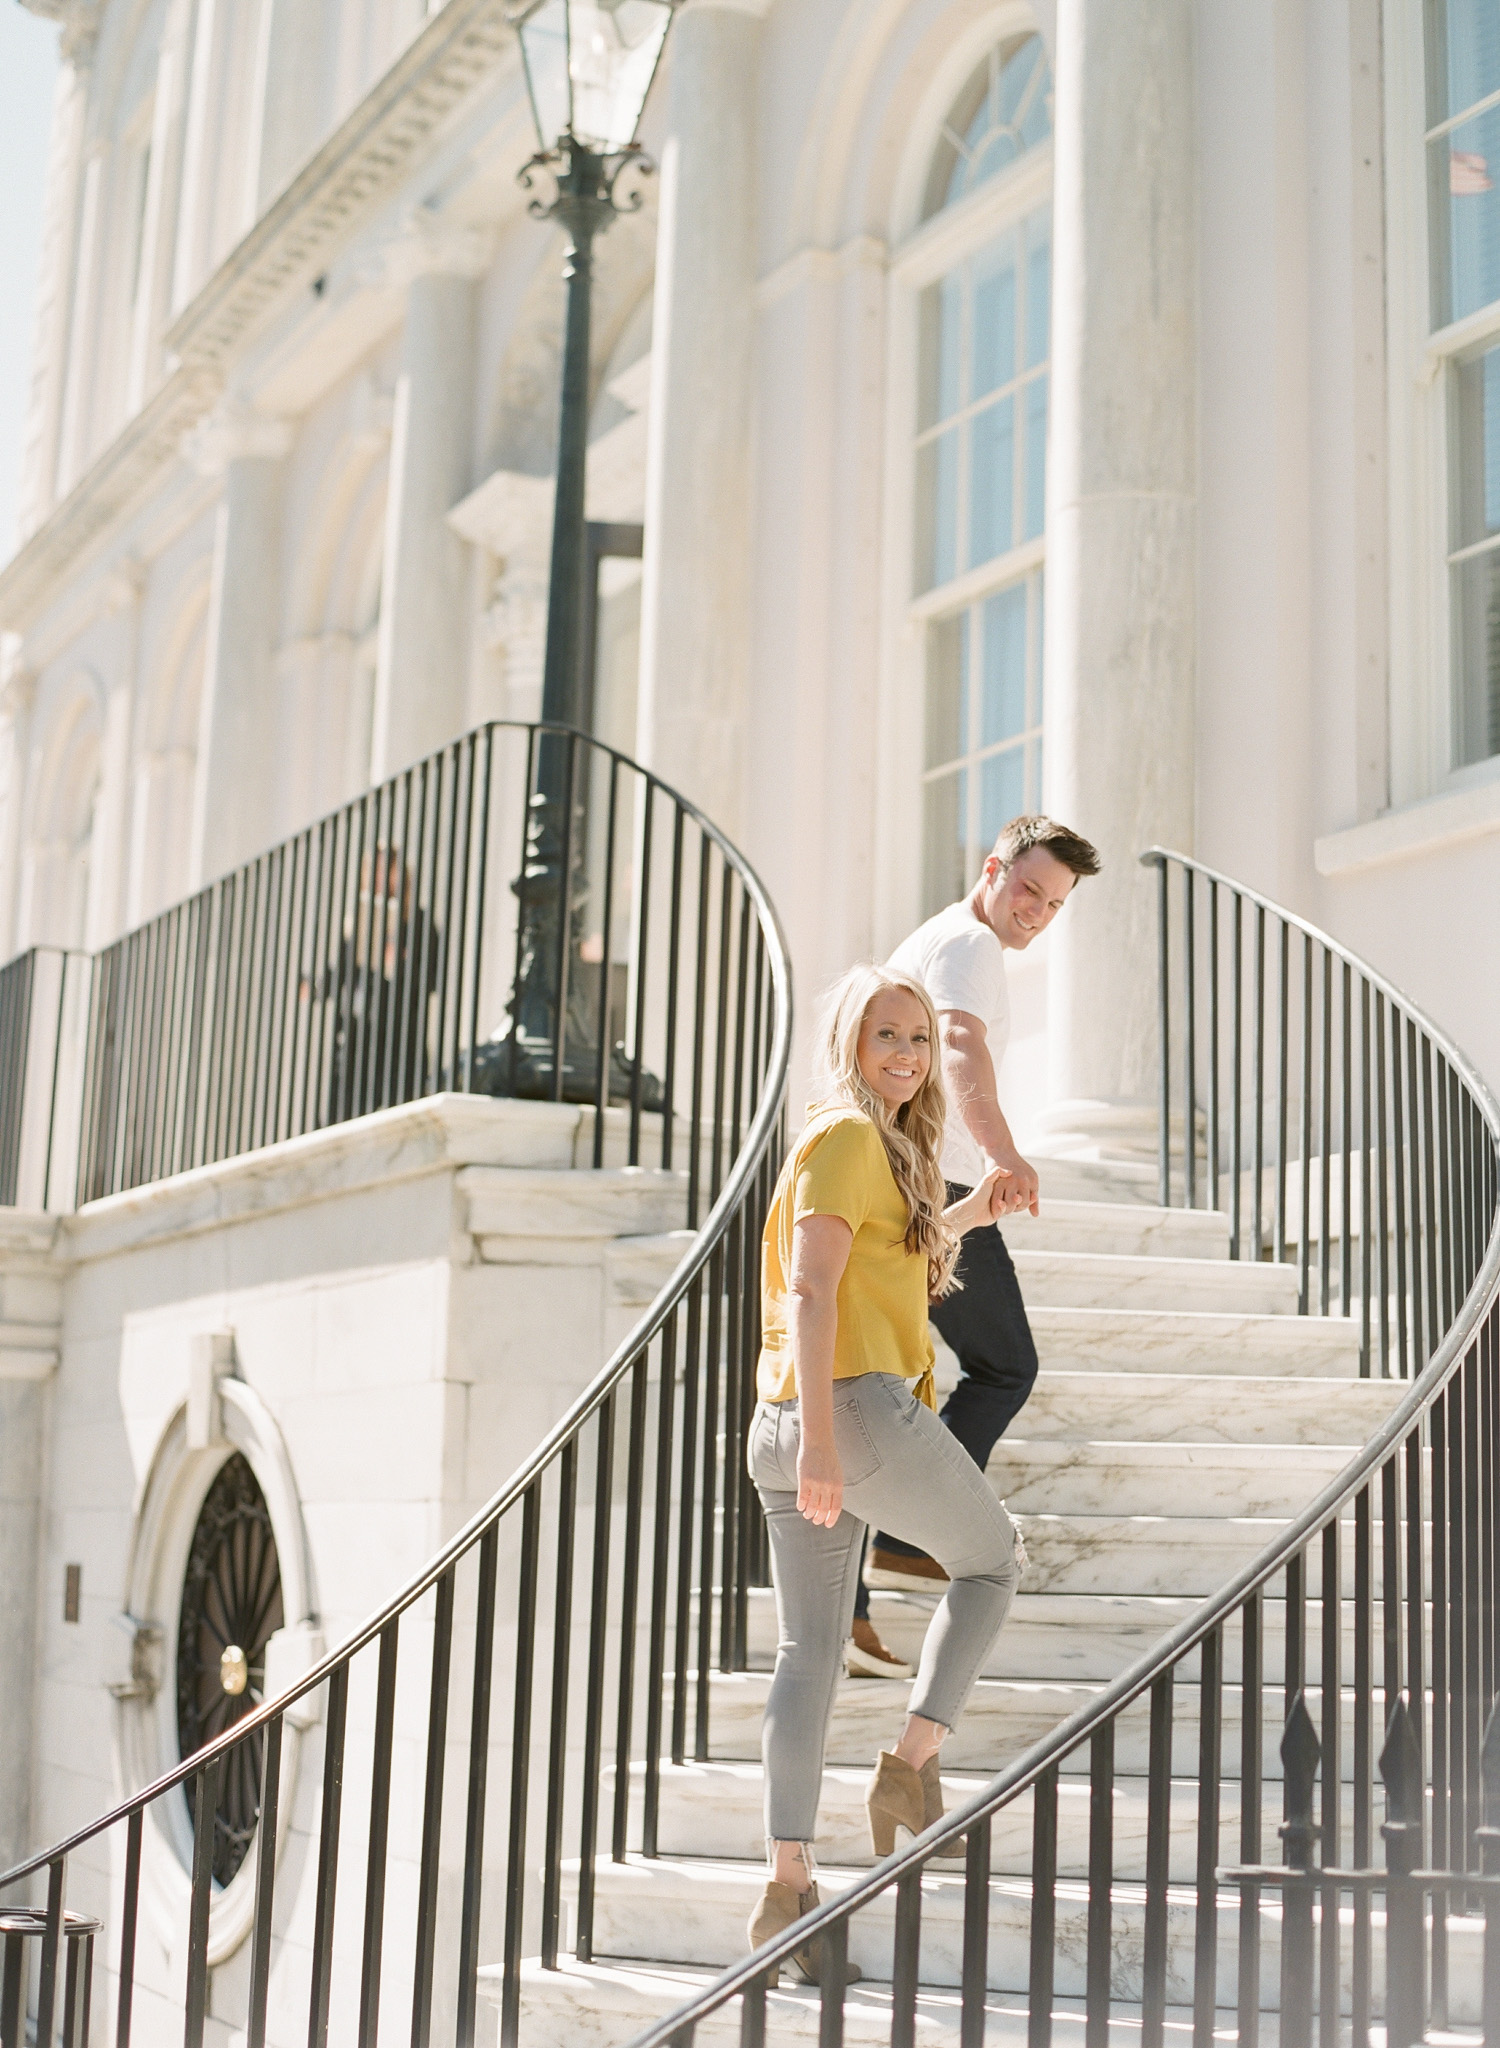 Charleston-Engagement-Photographer-23.jpg